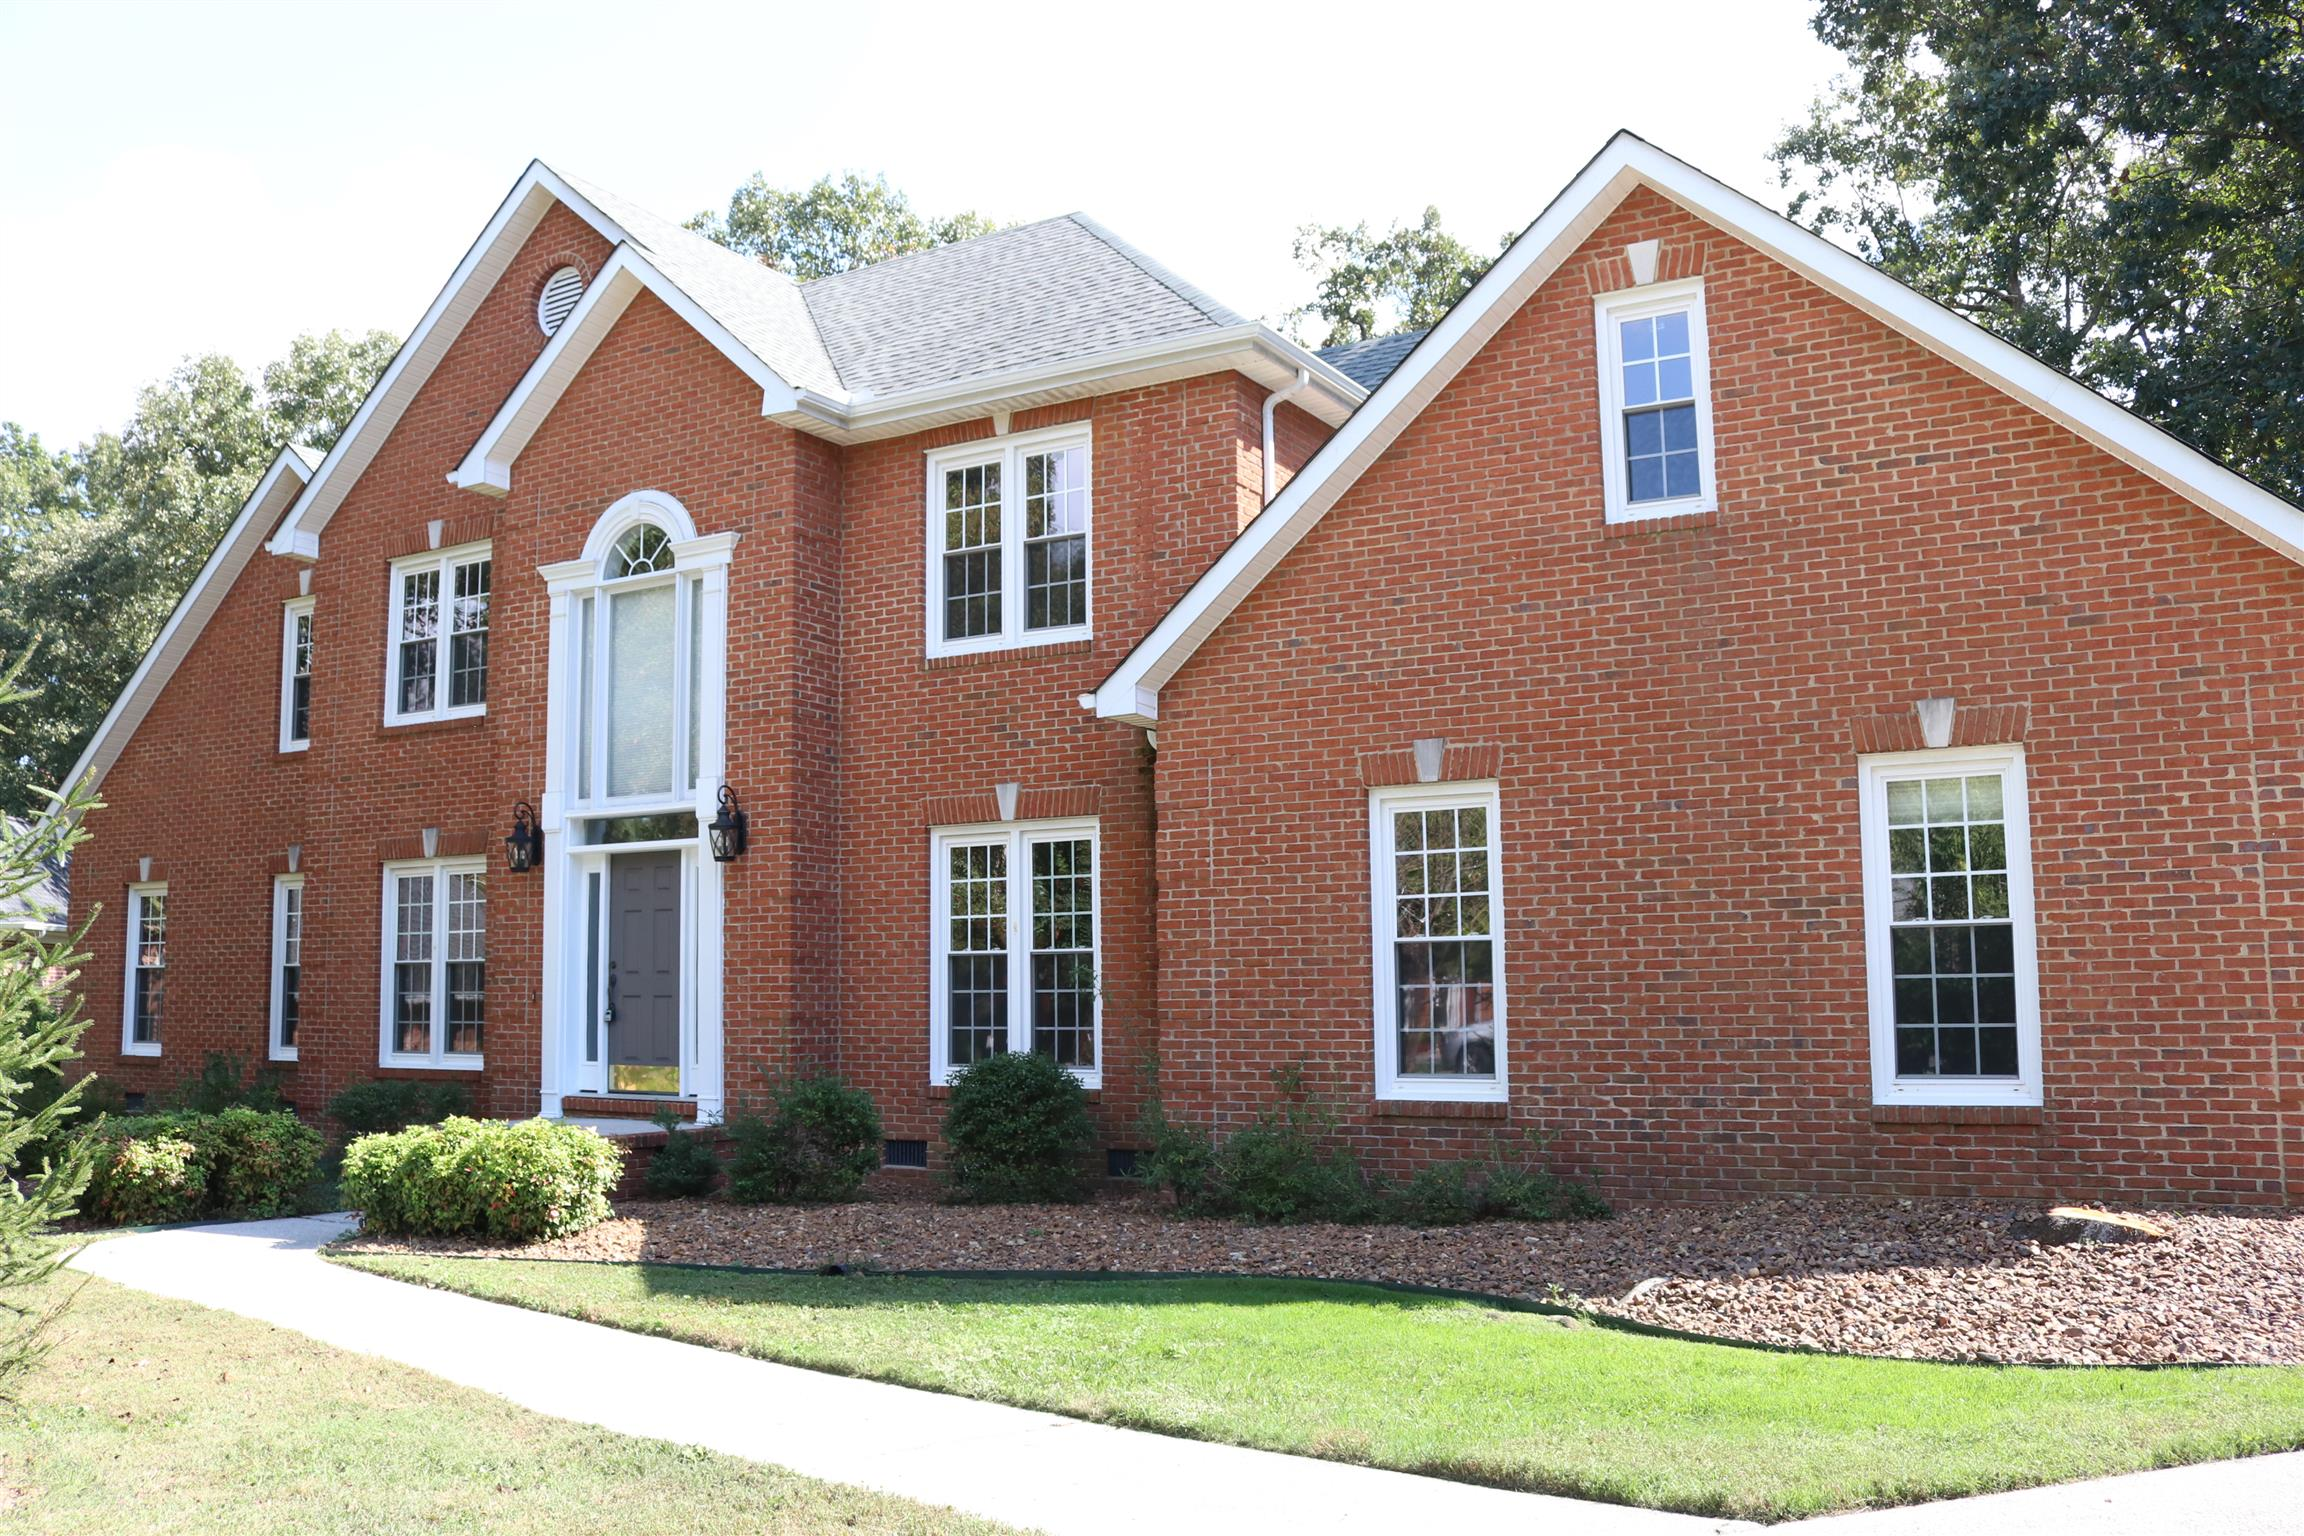 106 Amherst Dr, Tullahoma, Tennessee